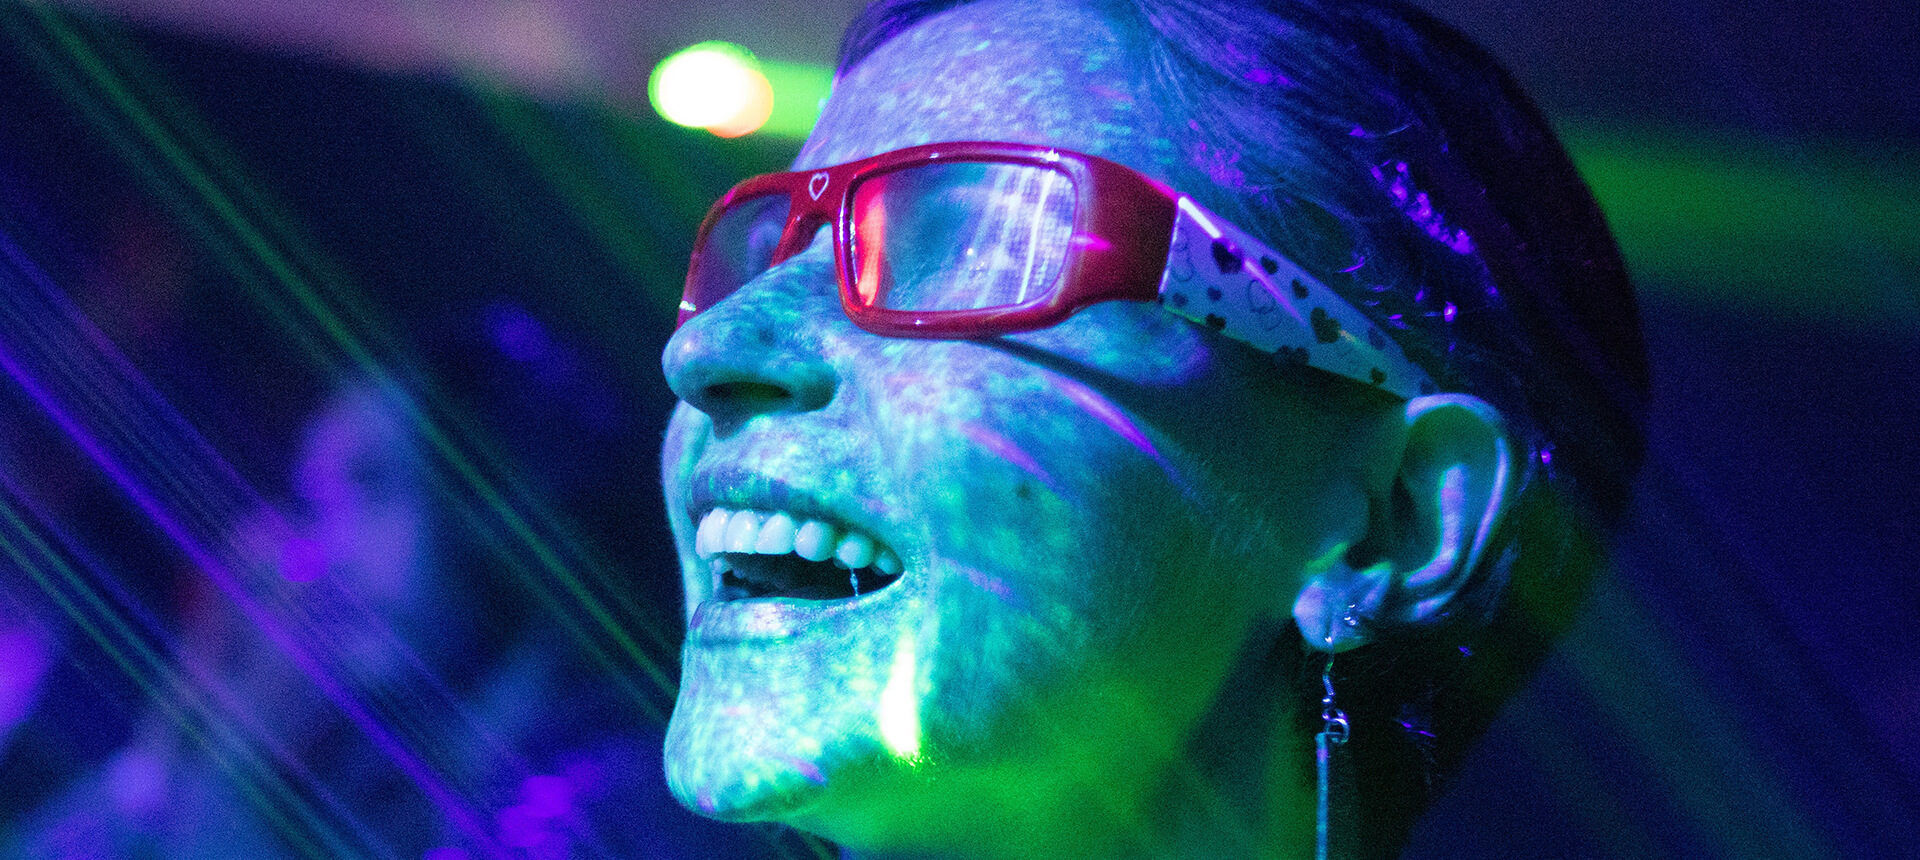 Girl with glasses in neon lights